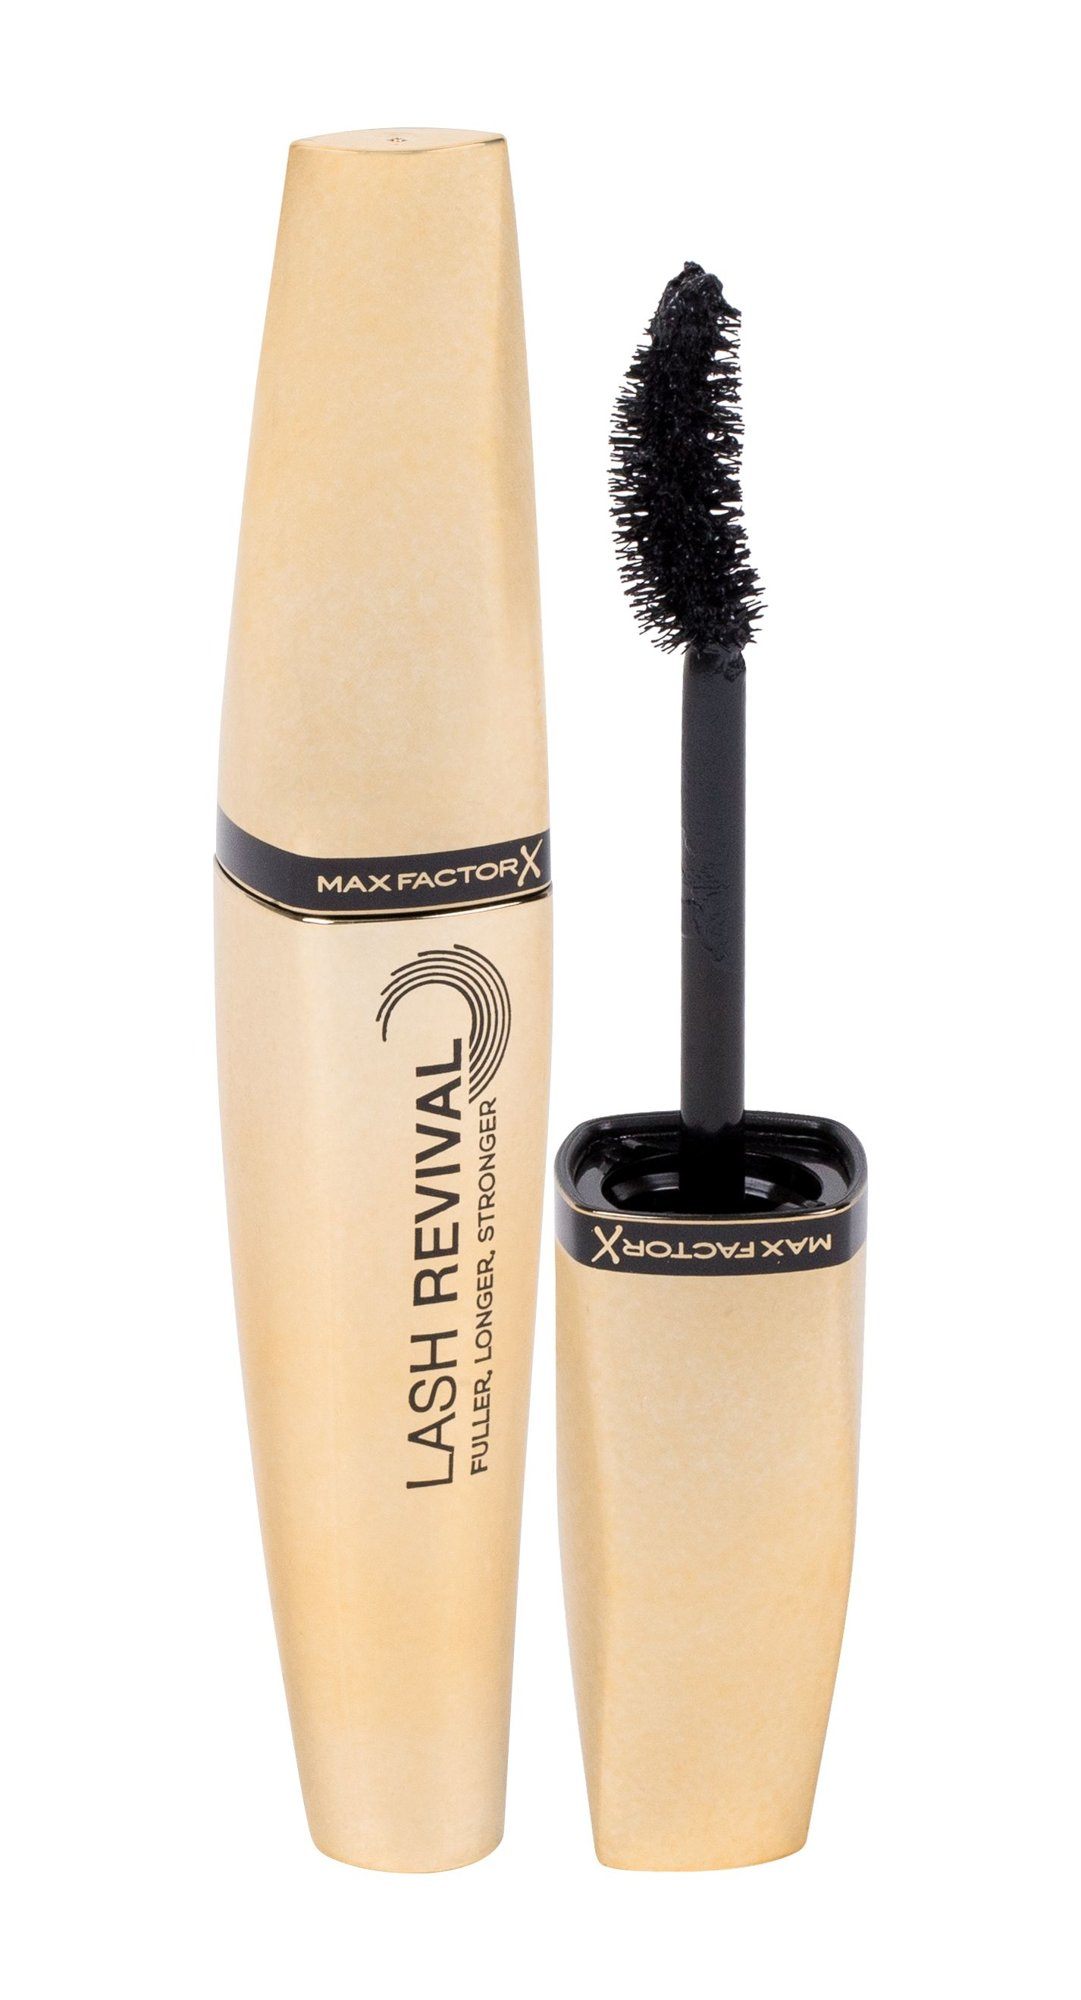 Max Factor Lash Revival  (Řasenka, W, 11 ml)